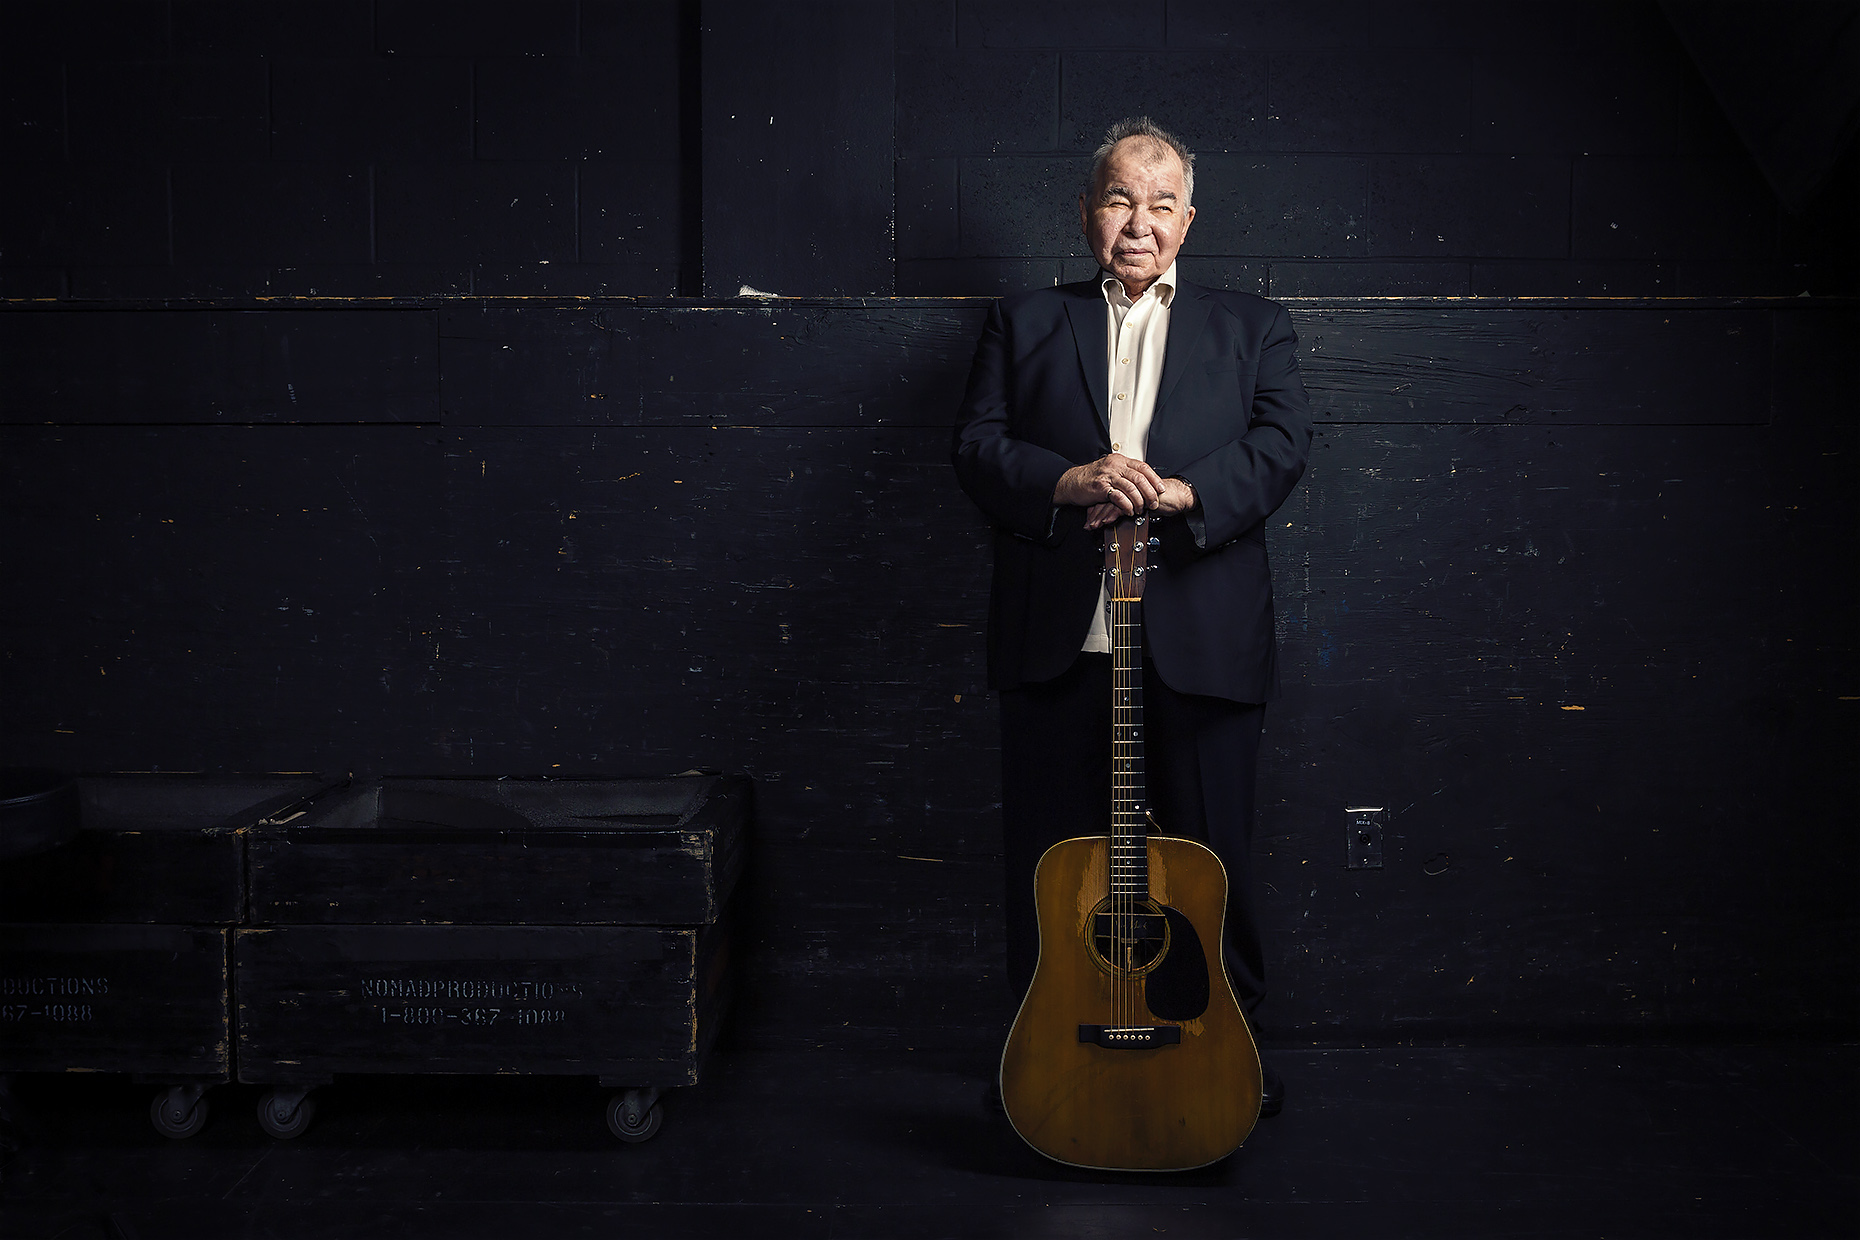 JOHN PRINE • MUSICIAN • JASON GROW PHOTOGRAPHY